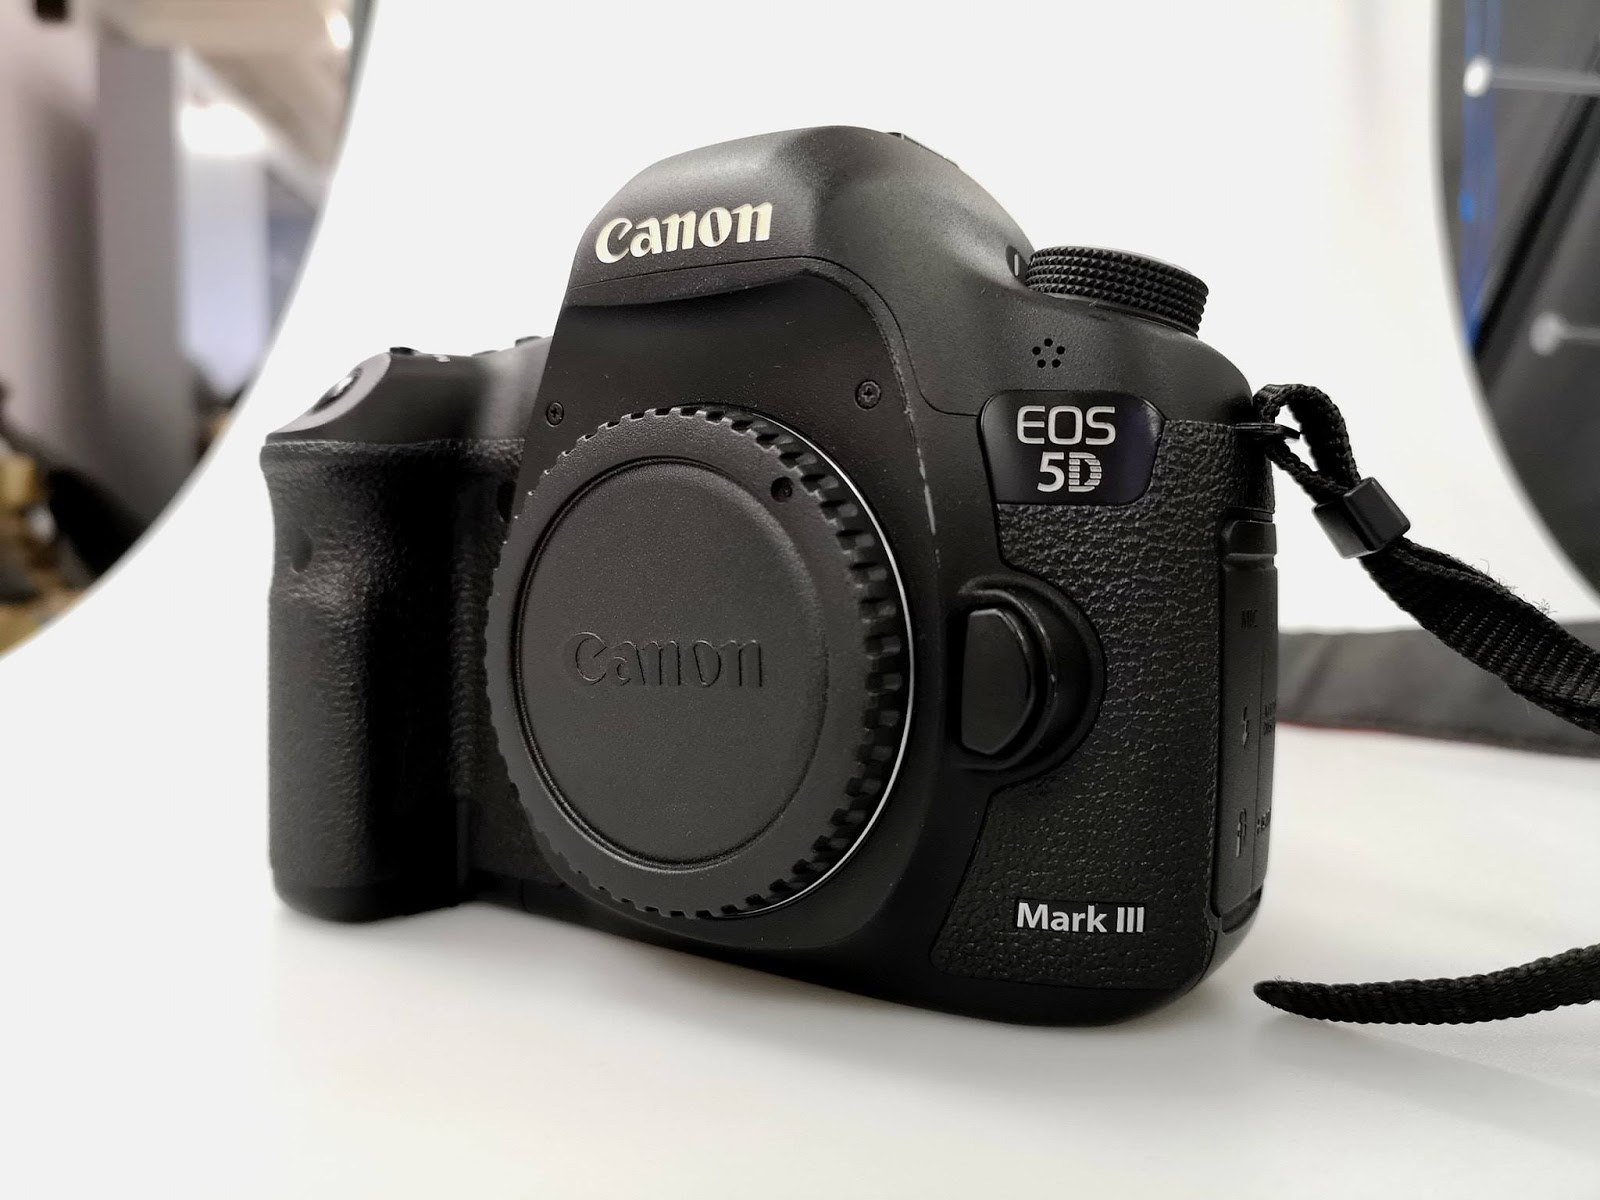 Canon 5D MARK iii BODY Second Option - Buy / Sell Pre Used